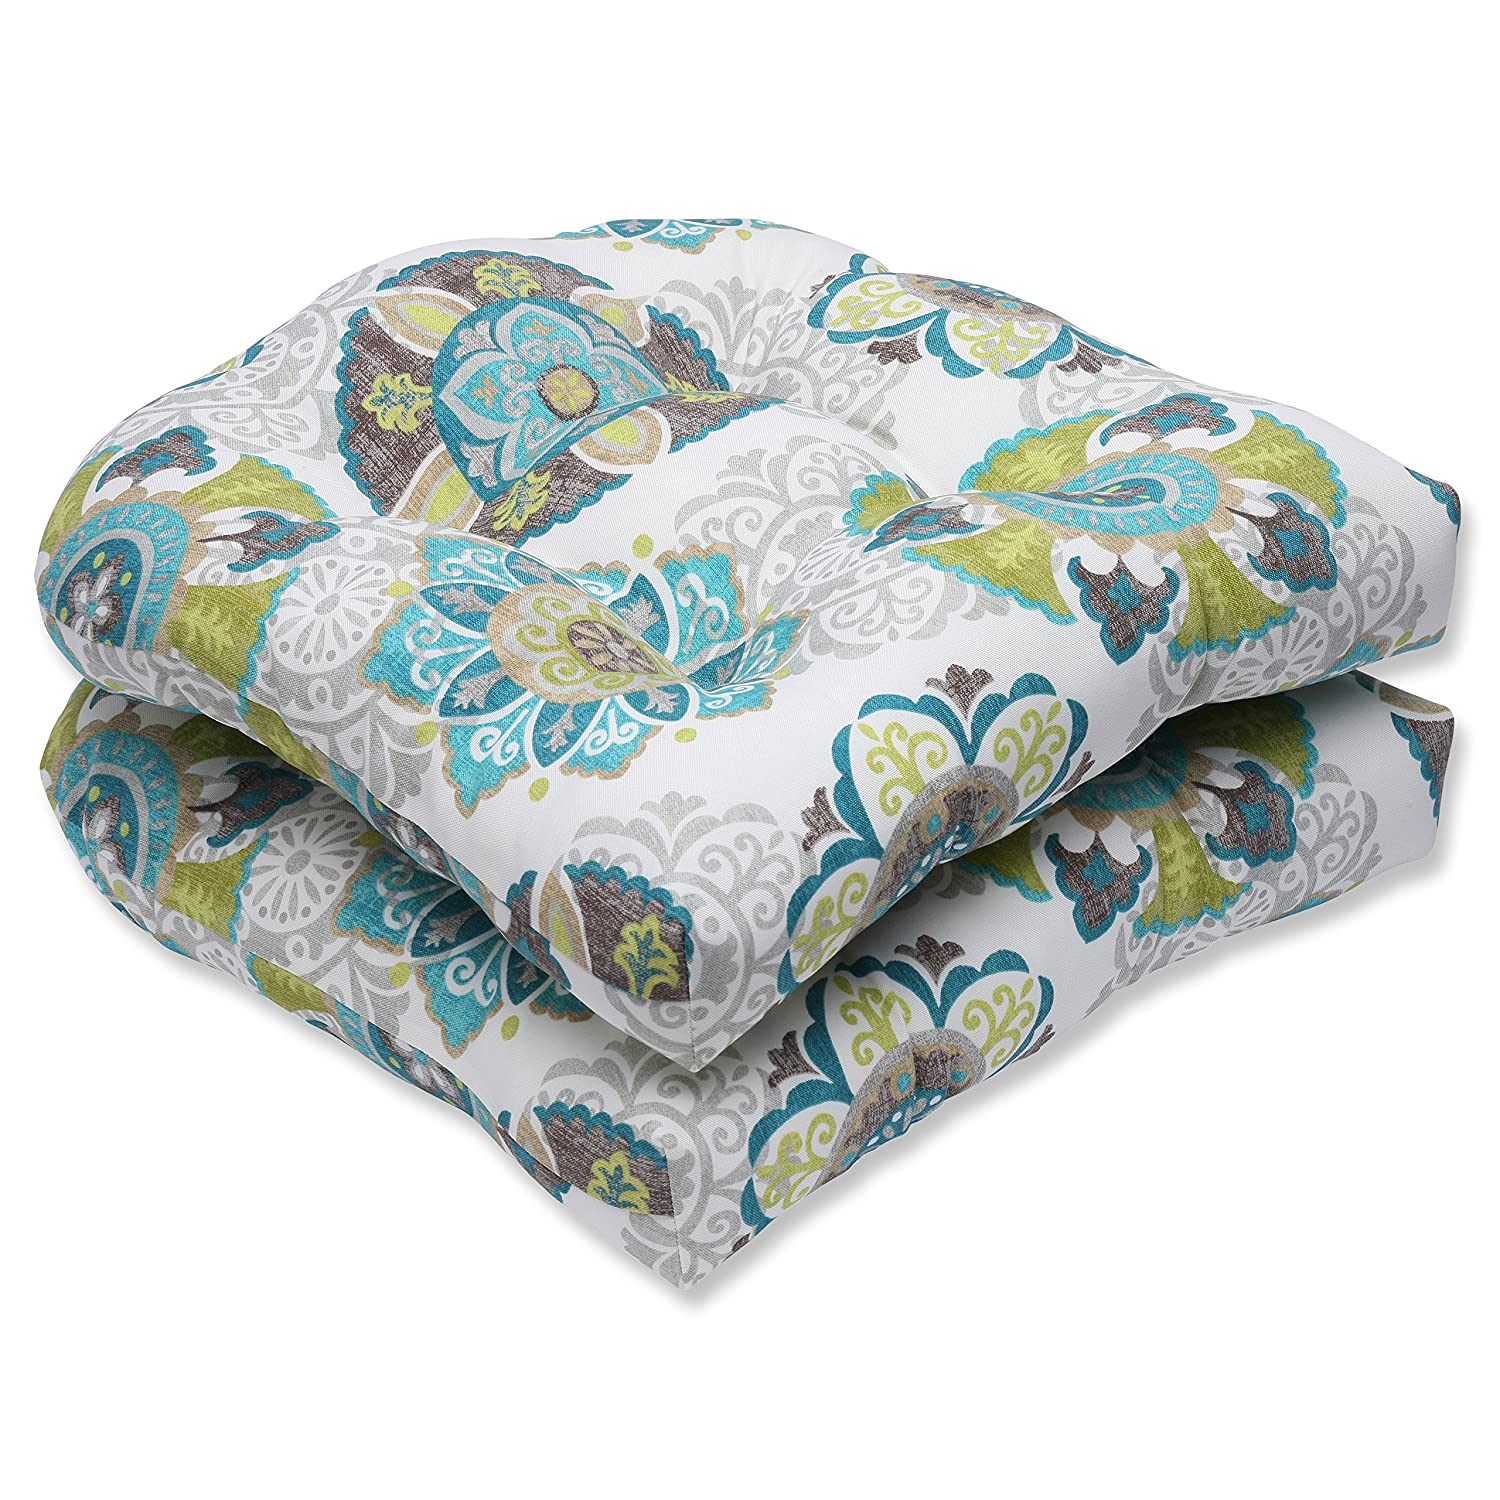 Pillow Perfect Outdoor Allodala Wicker Seat Cushion, Oasis, Set of 2